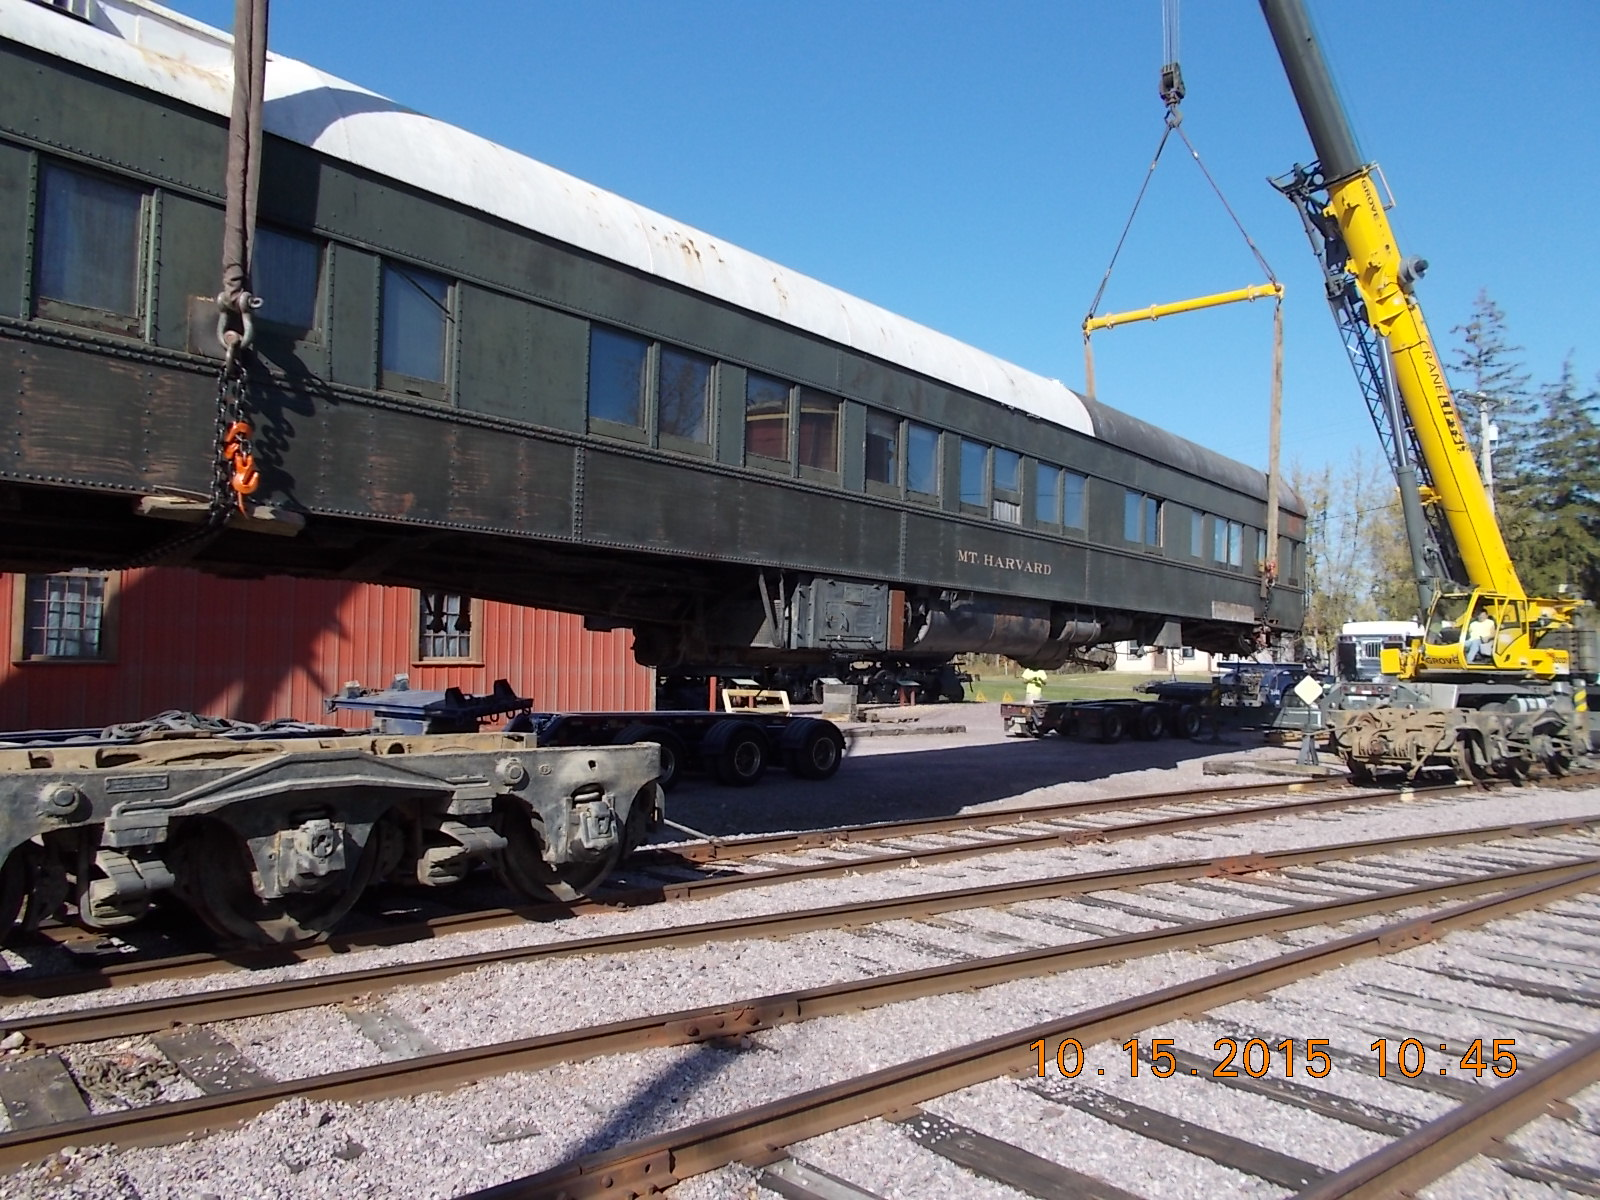 Swinging the car body over to place on the thirteen axle road truck